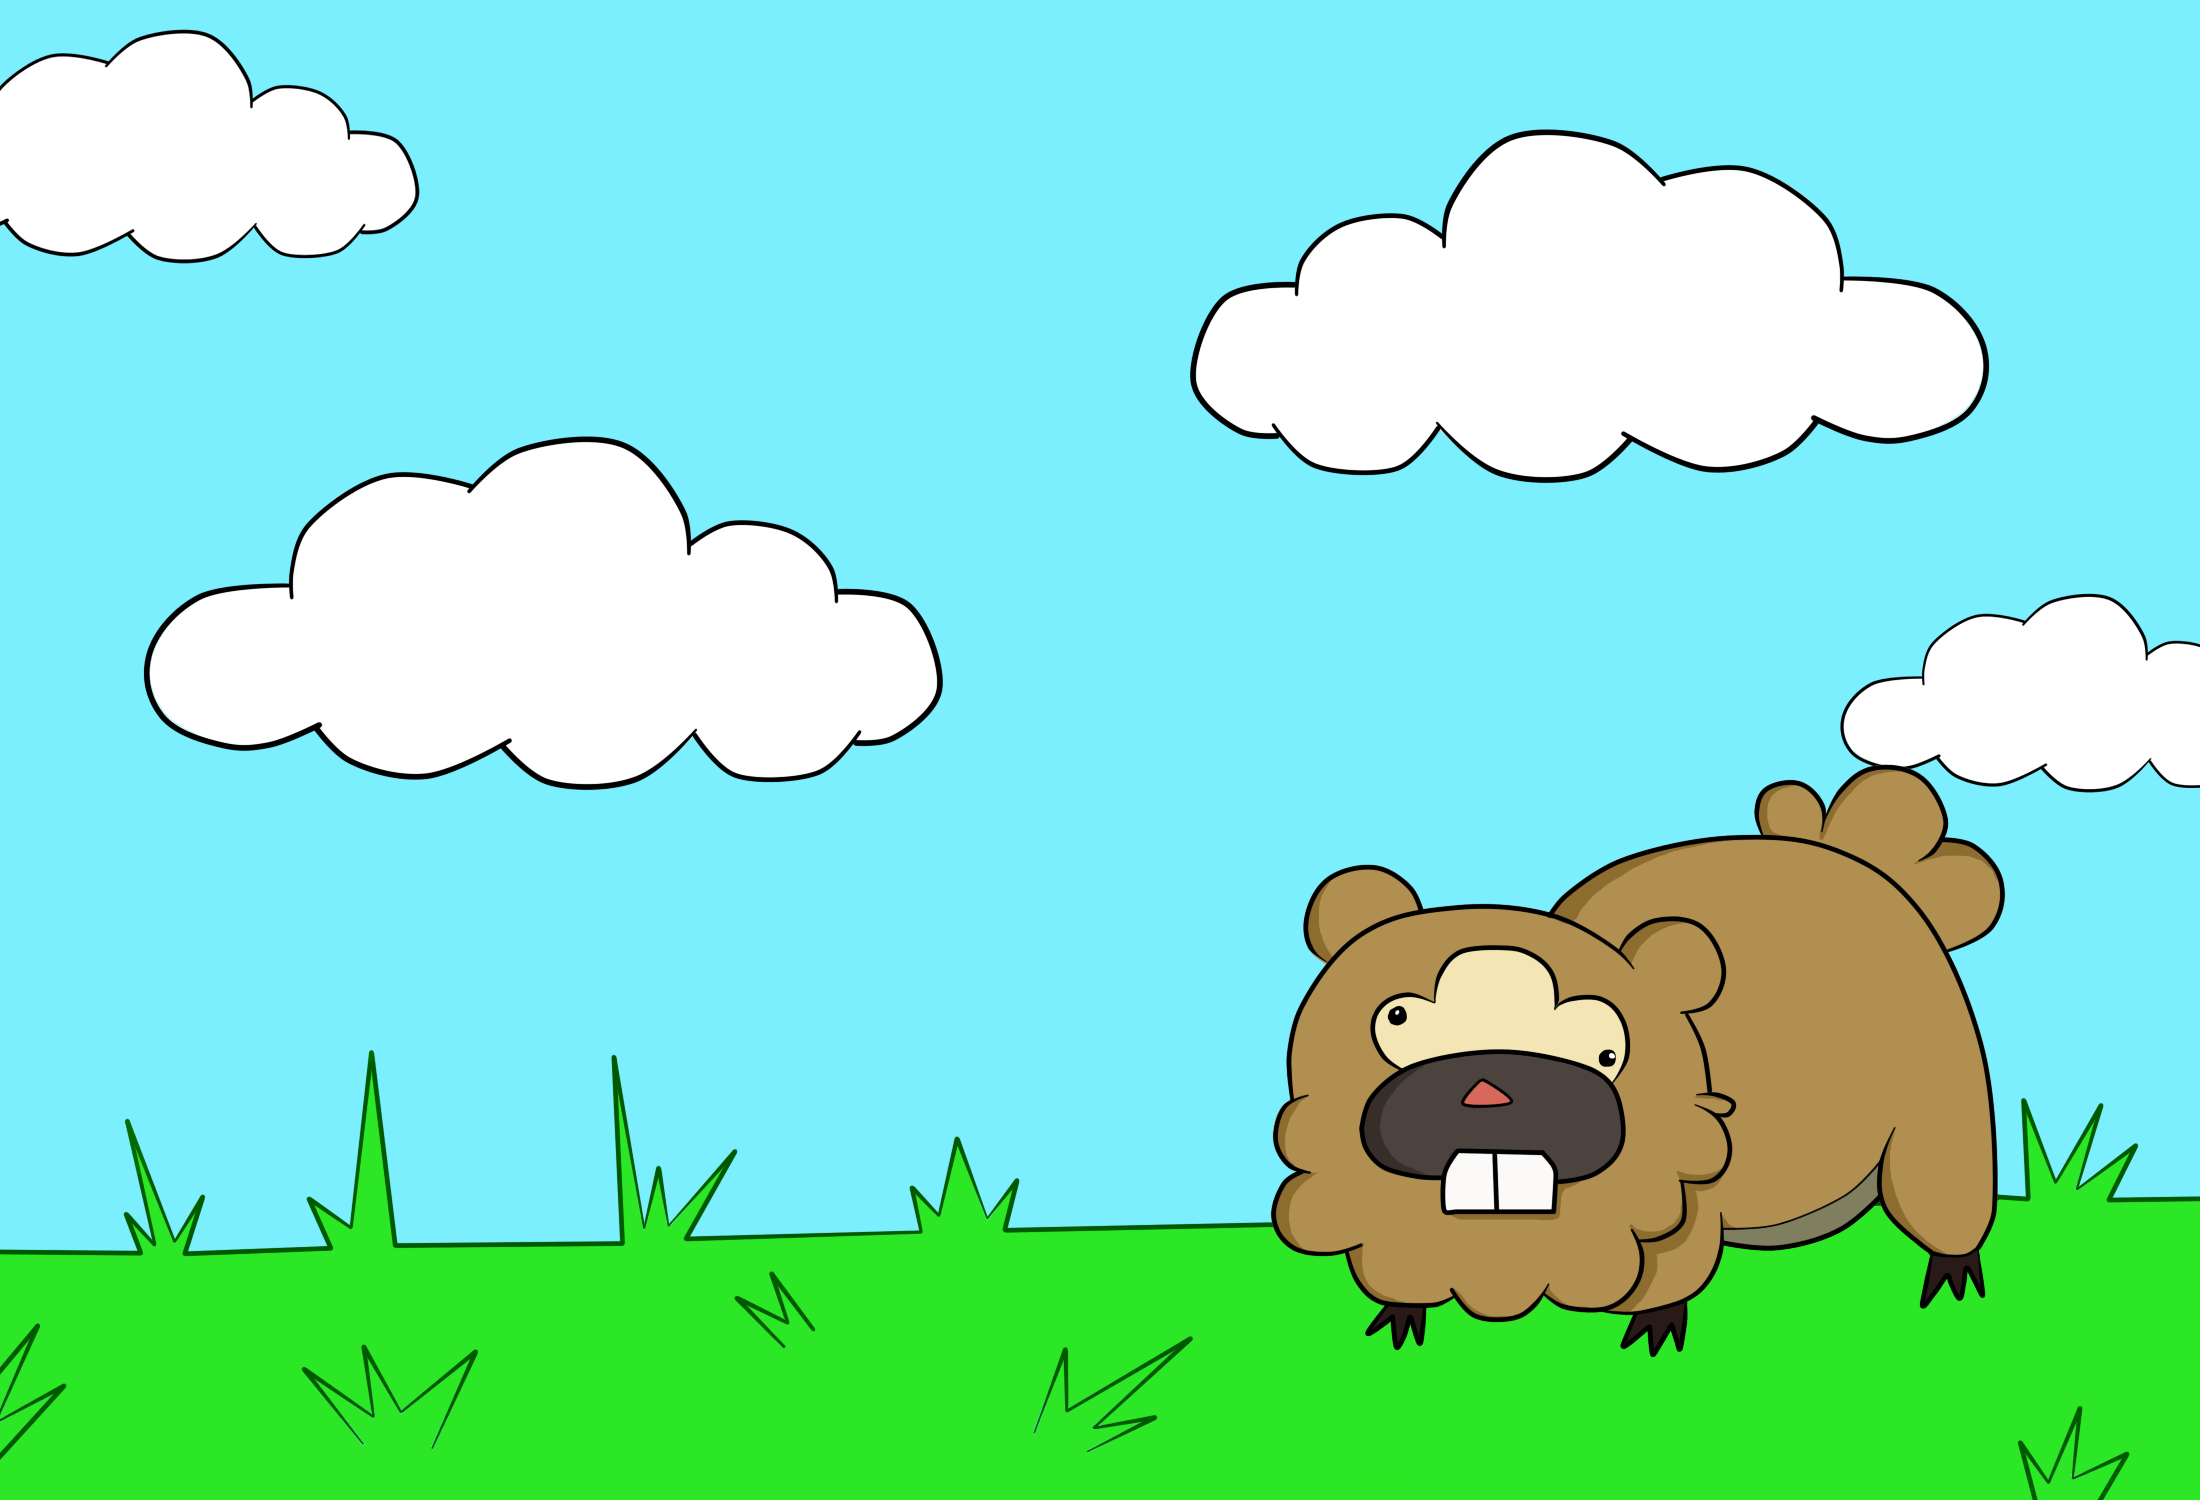 Bidoof Wallpaper by AmebaPico on DeviantArt